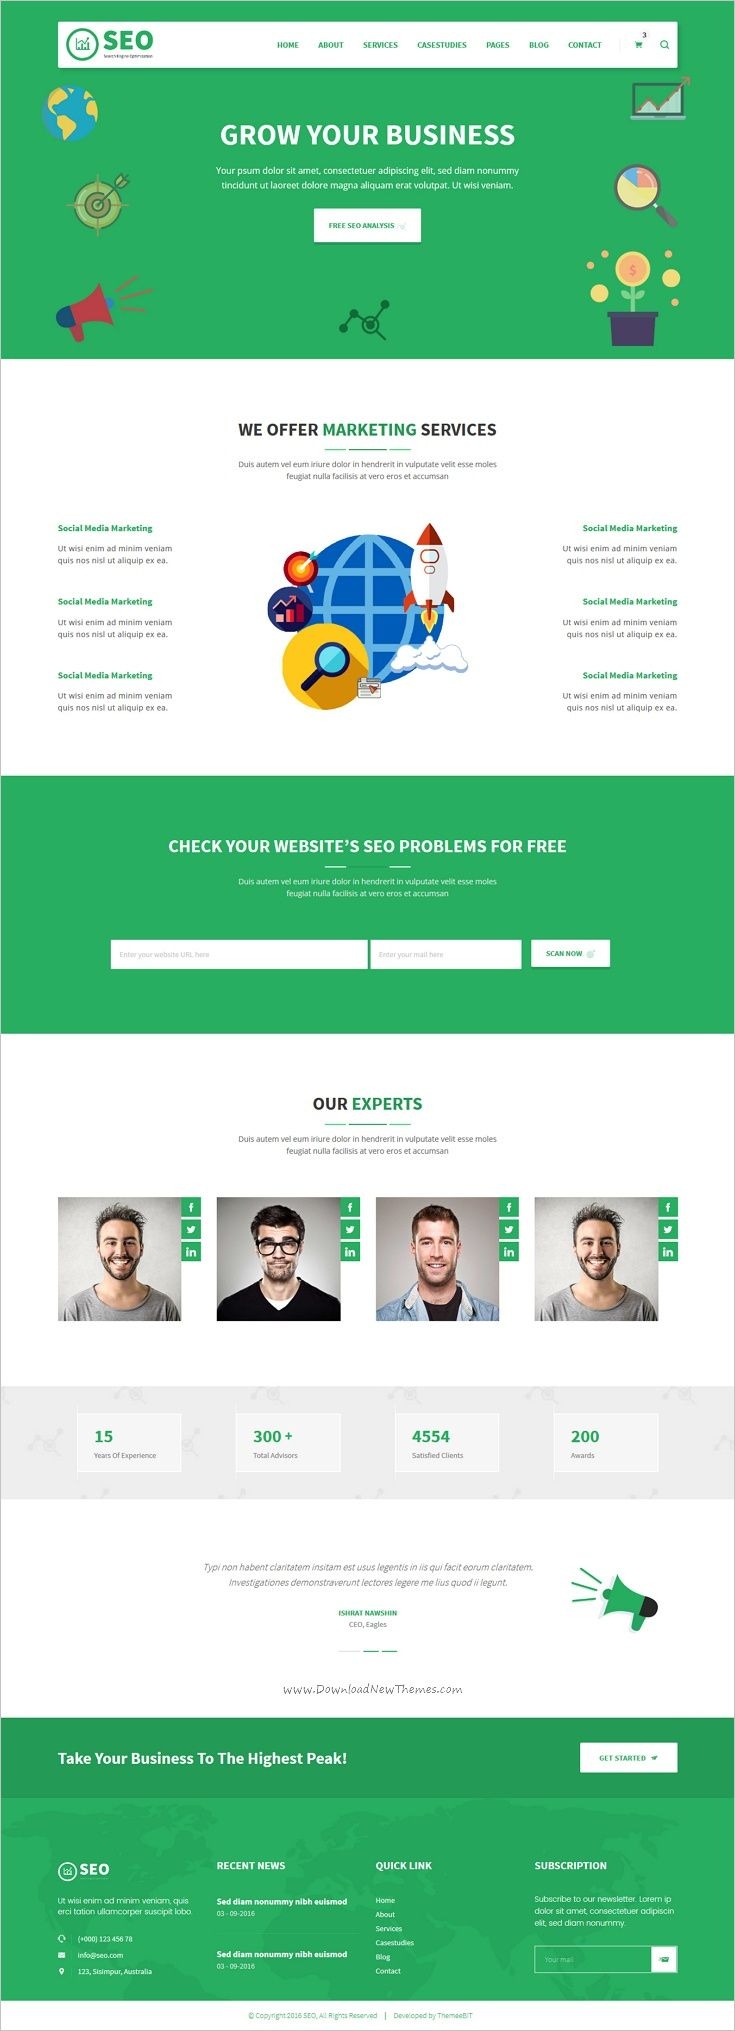 SEO PRO is a minimal 2in1 #Bootstrap HTML template SEO #Ranking and #marketing agencies websites download now➩ https://themeforest.net/item/seo-pro-search-engine-optimization-marketing-html-template/18925621?ref=Datasata